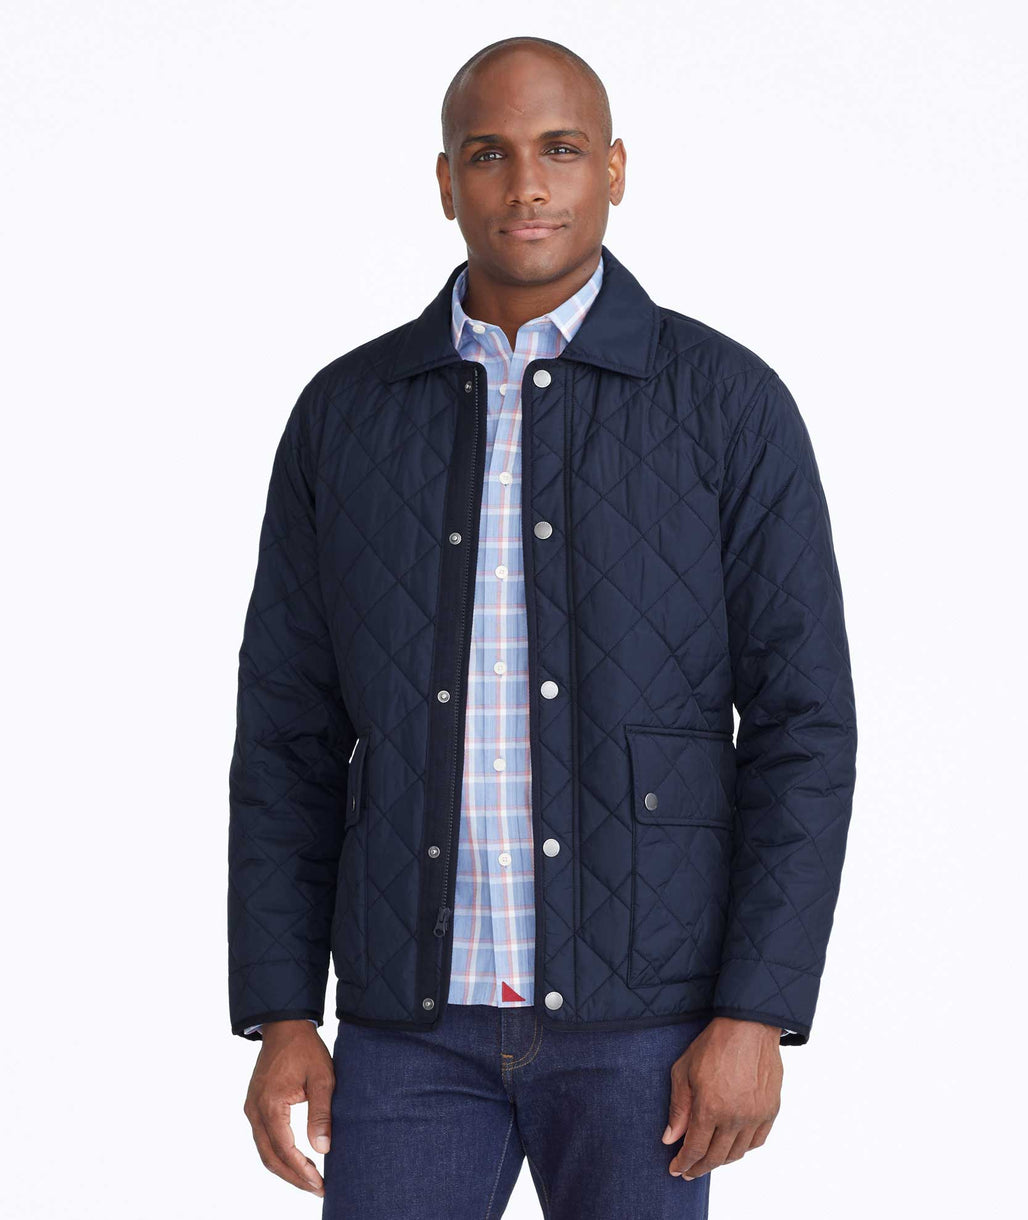 Model wearing a Navy Quilted Field Jacket